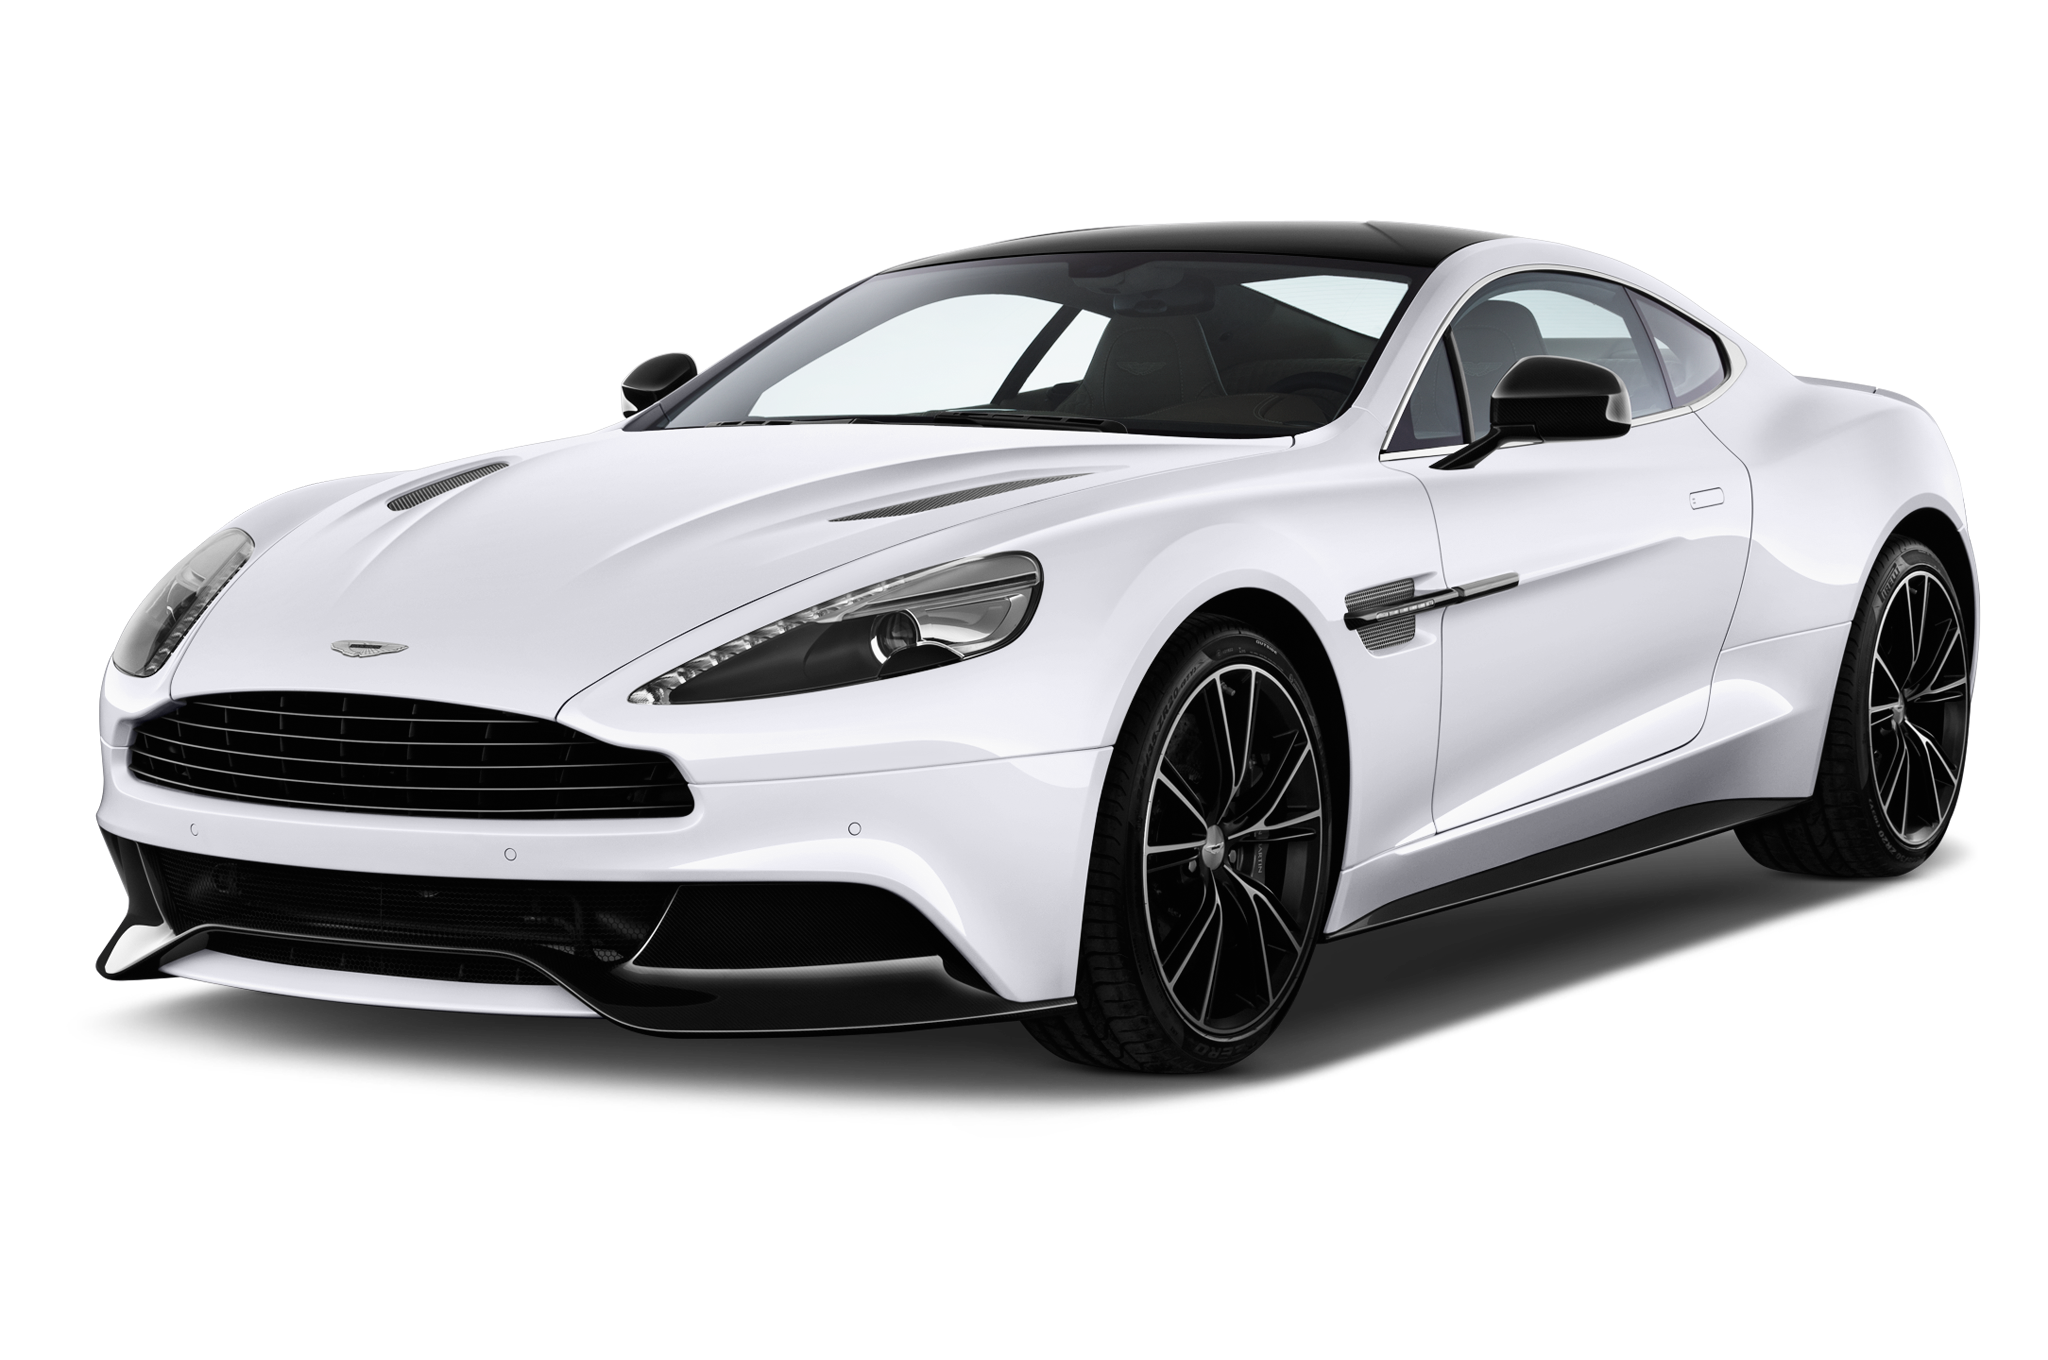 Aston Martin Vanquish Zagato Volante Priced From - How much does a aston martin cost